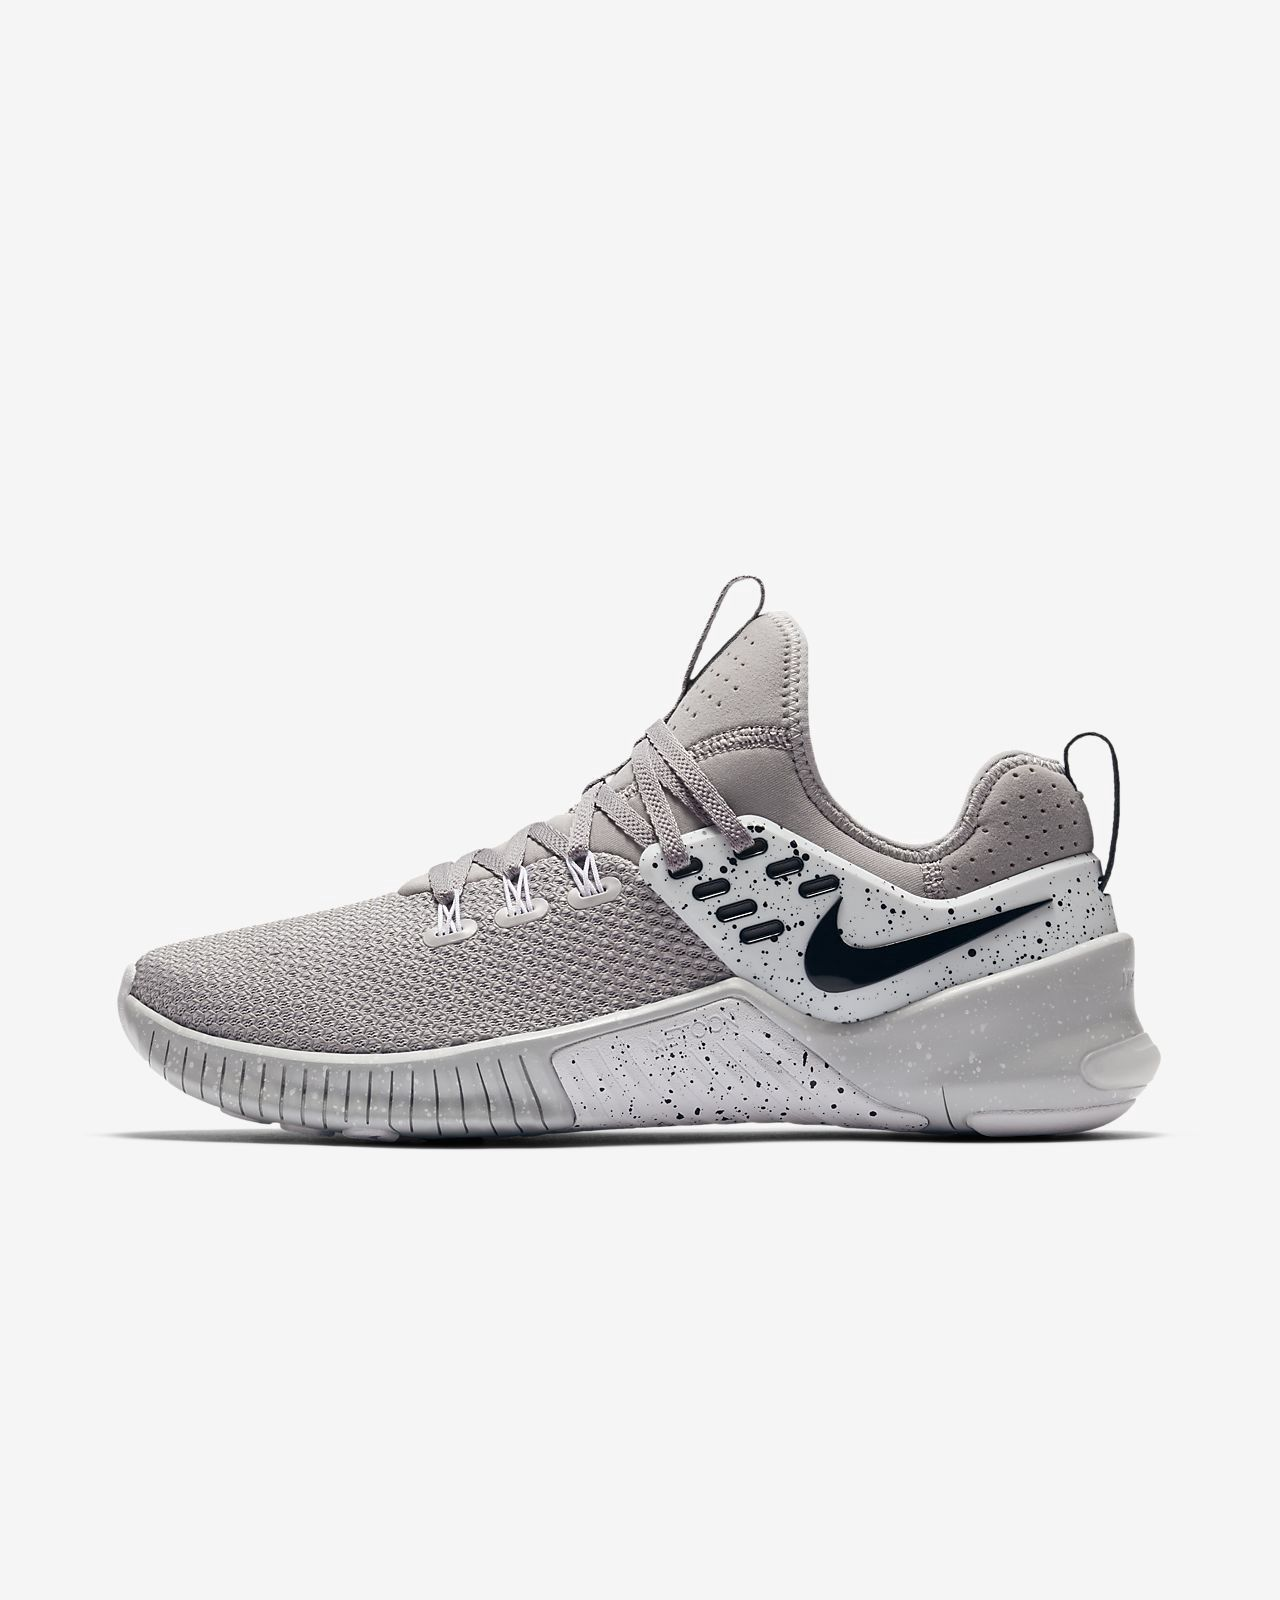 daa033f1bcb5 Nike Free X Metcon Gym Cross Training Shoe - M 8.5   W 10